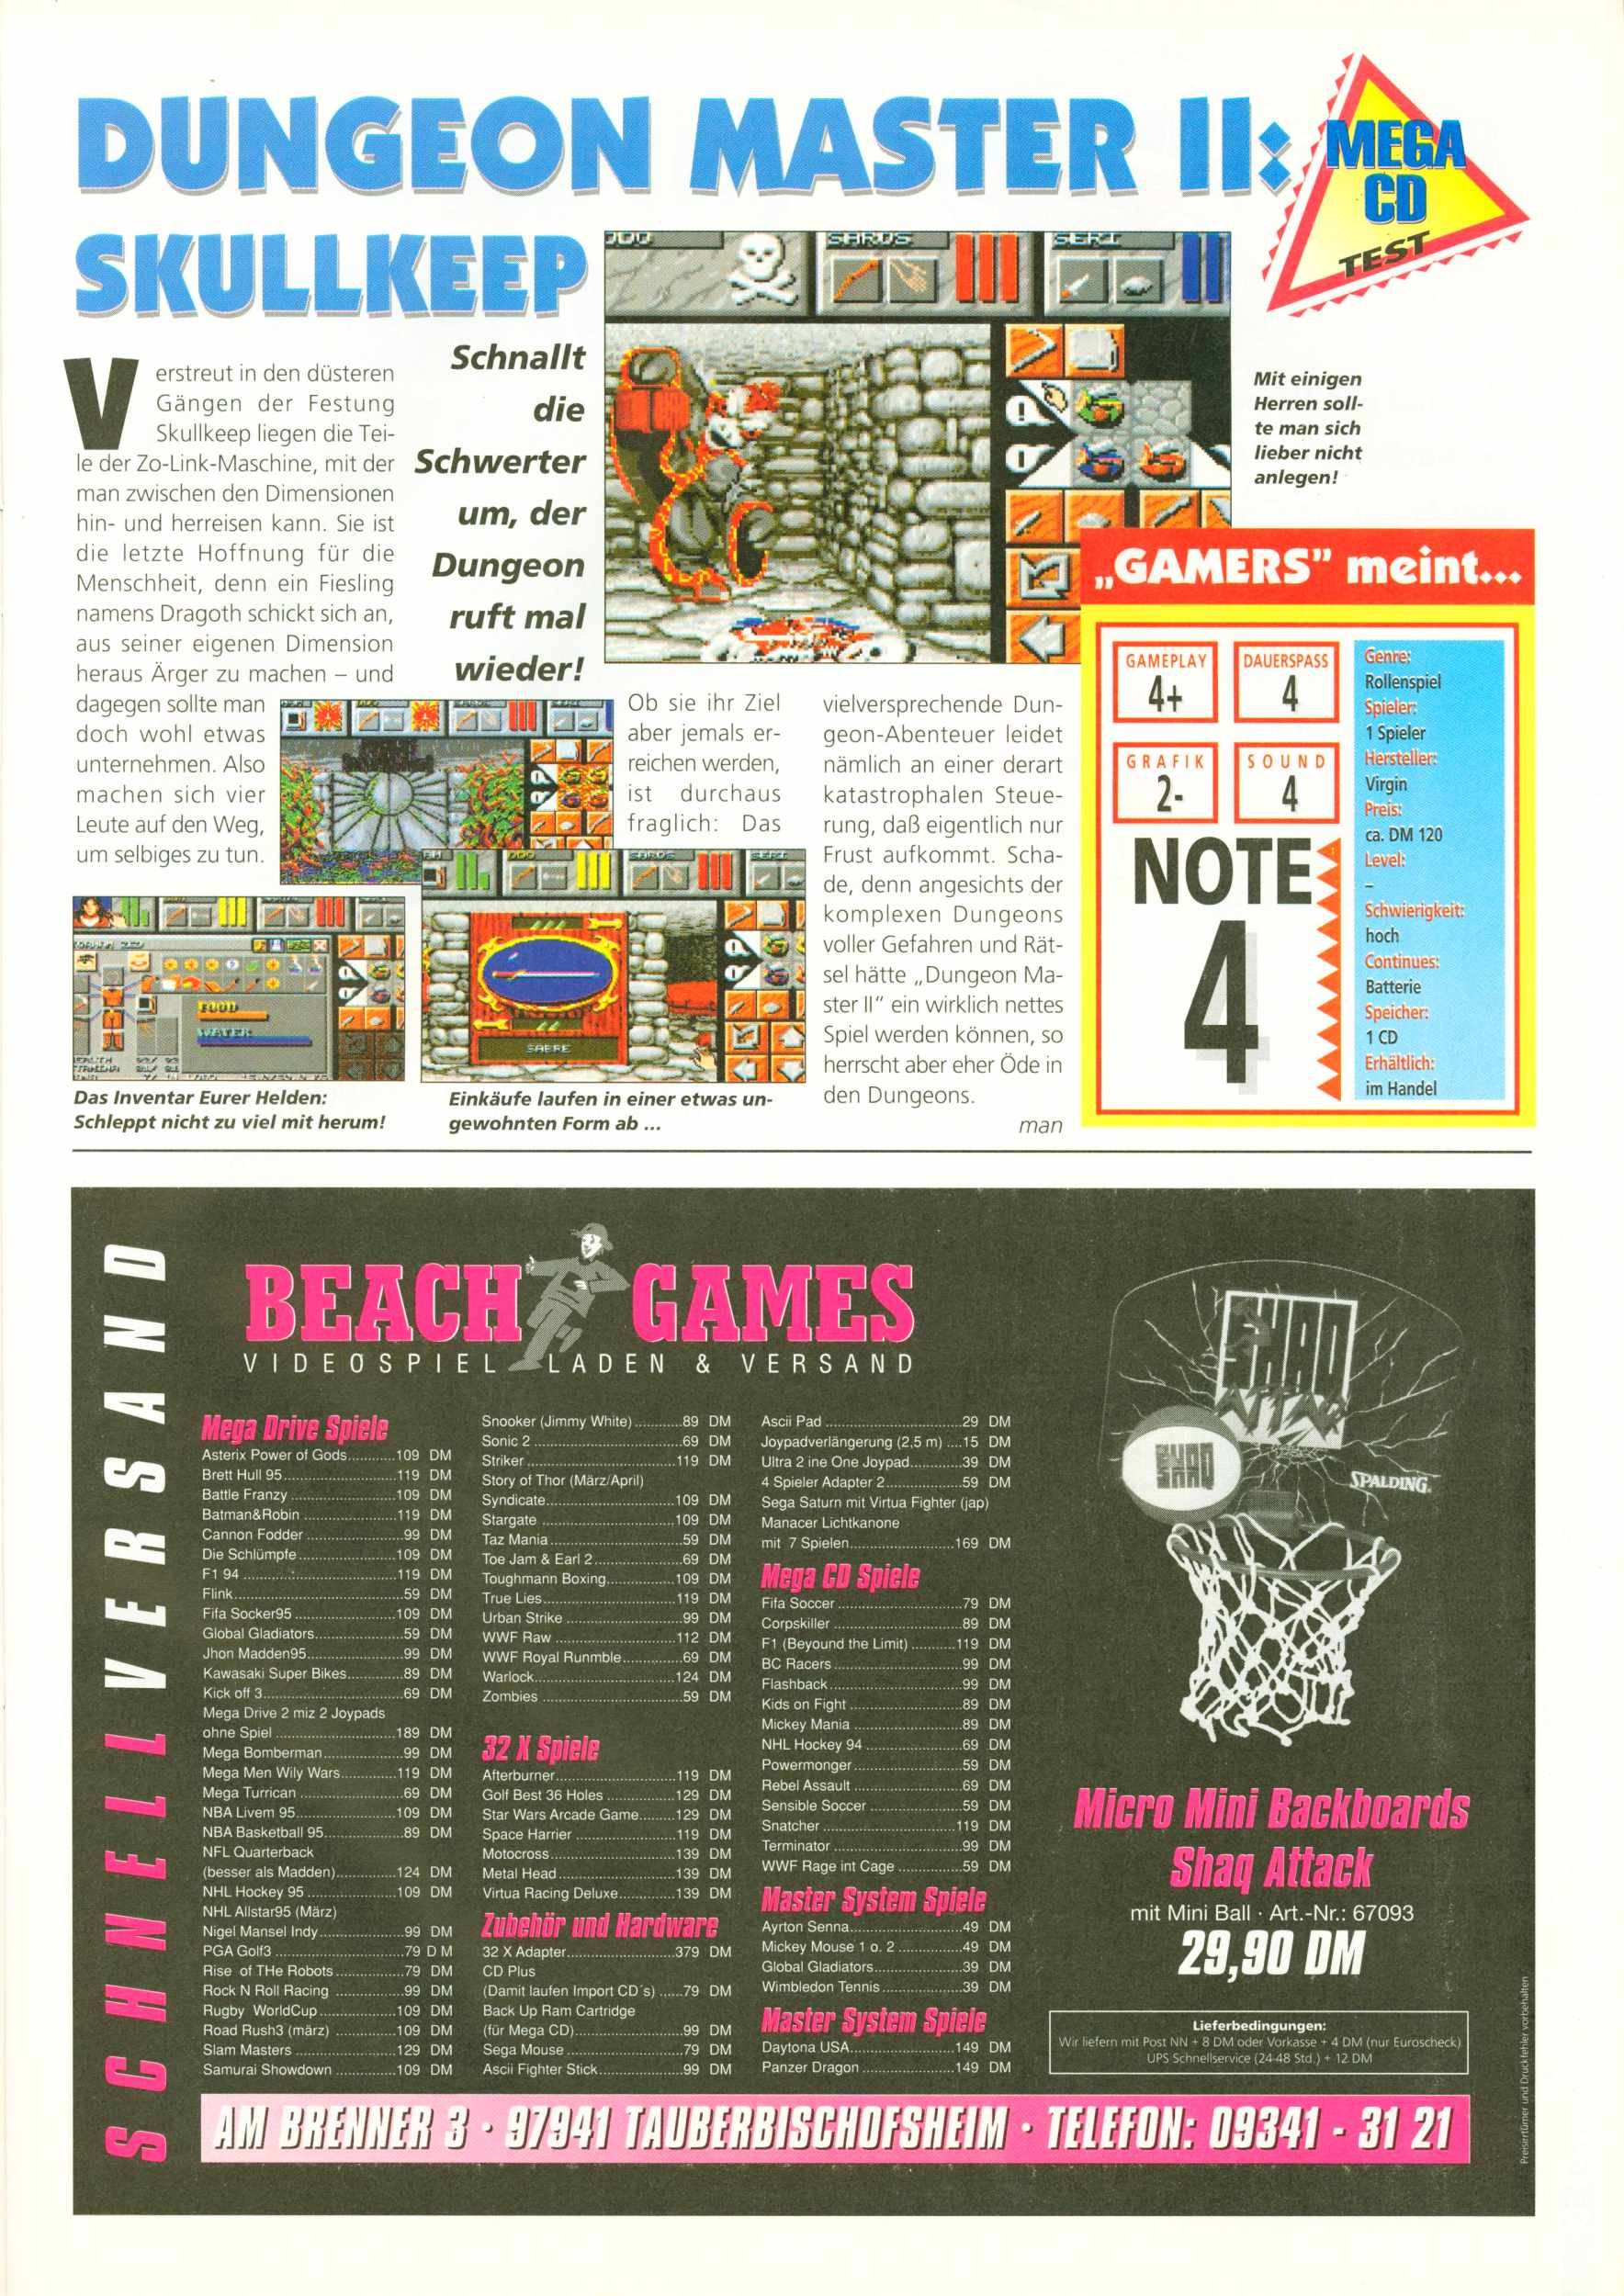 Dungeon Master II for Mega CD Review published in German magazine 'Gamers', June 1995, Page 31